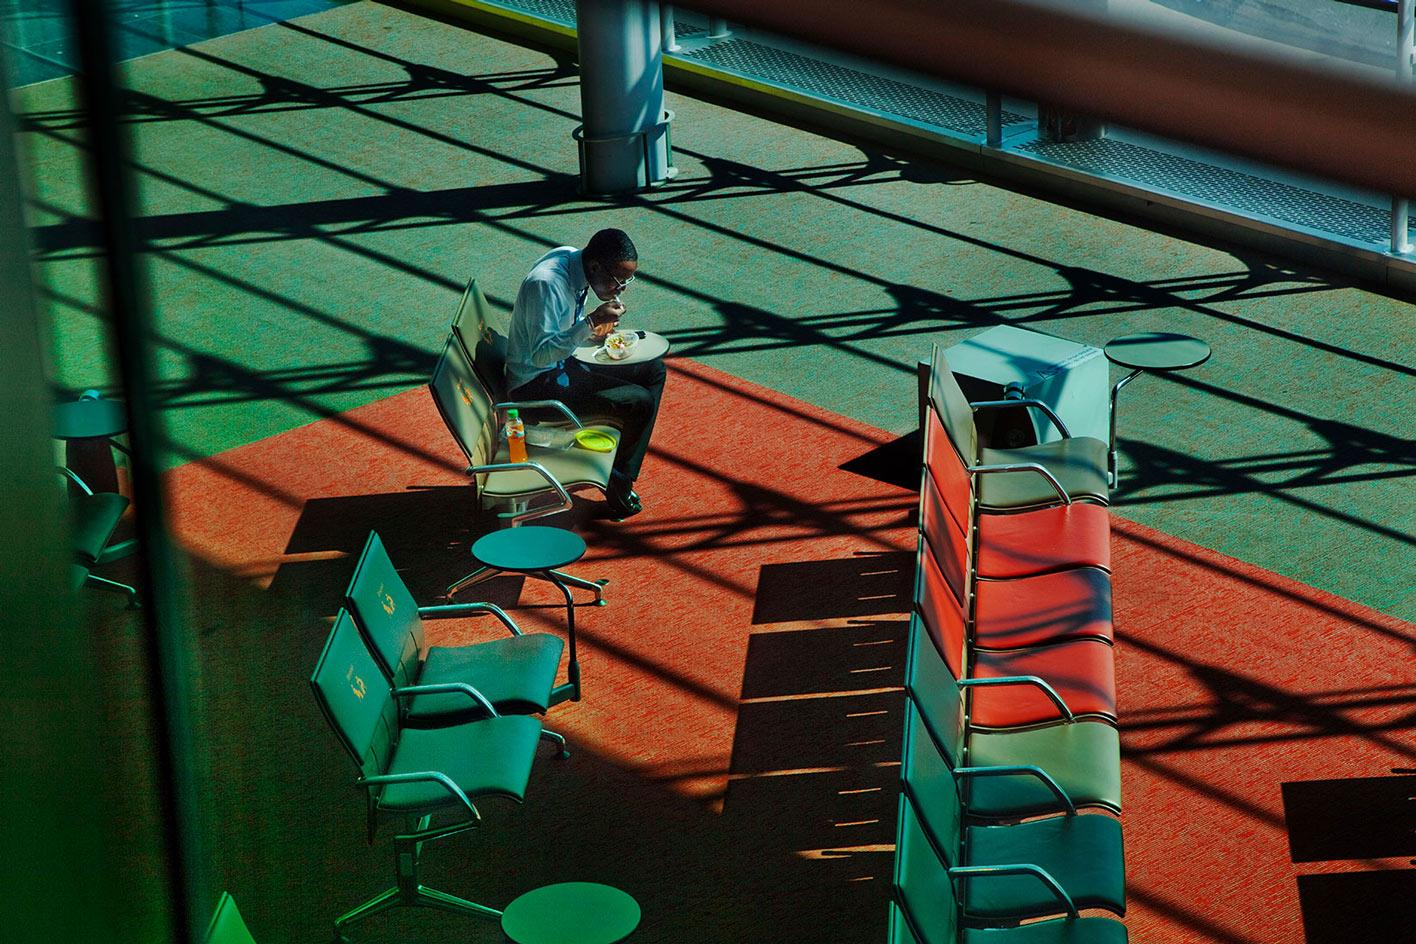 HarryGruyaert's photograph of a man eating a meal alone. Part of Magnum Photo's square print sale which focuses on Escapism